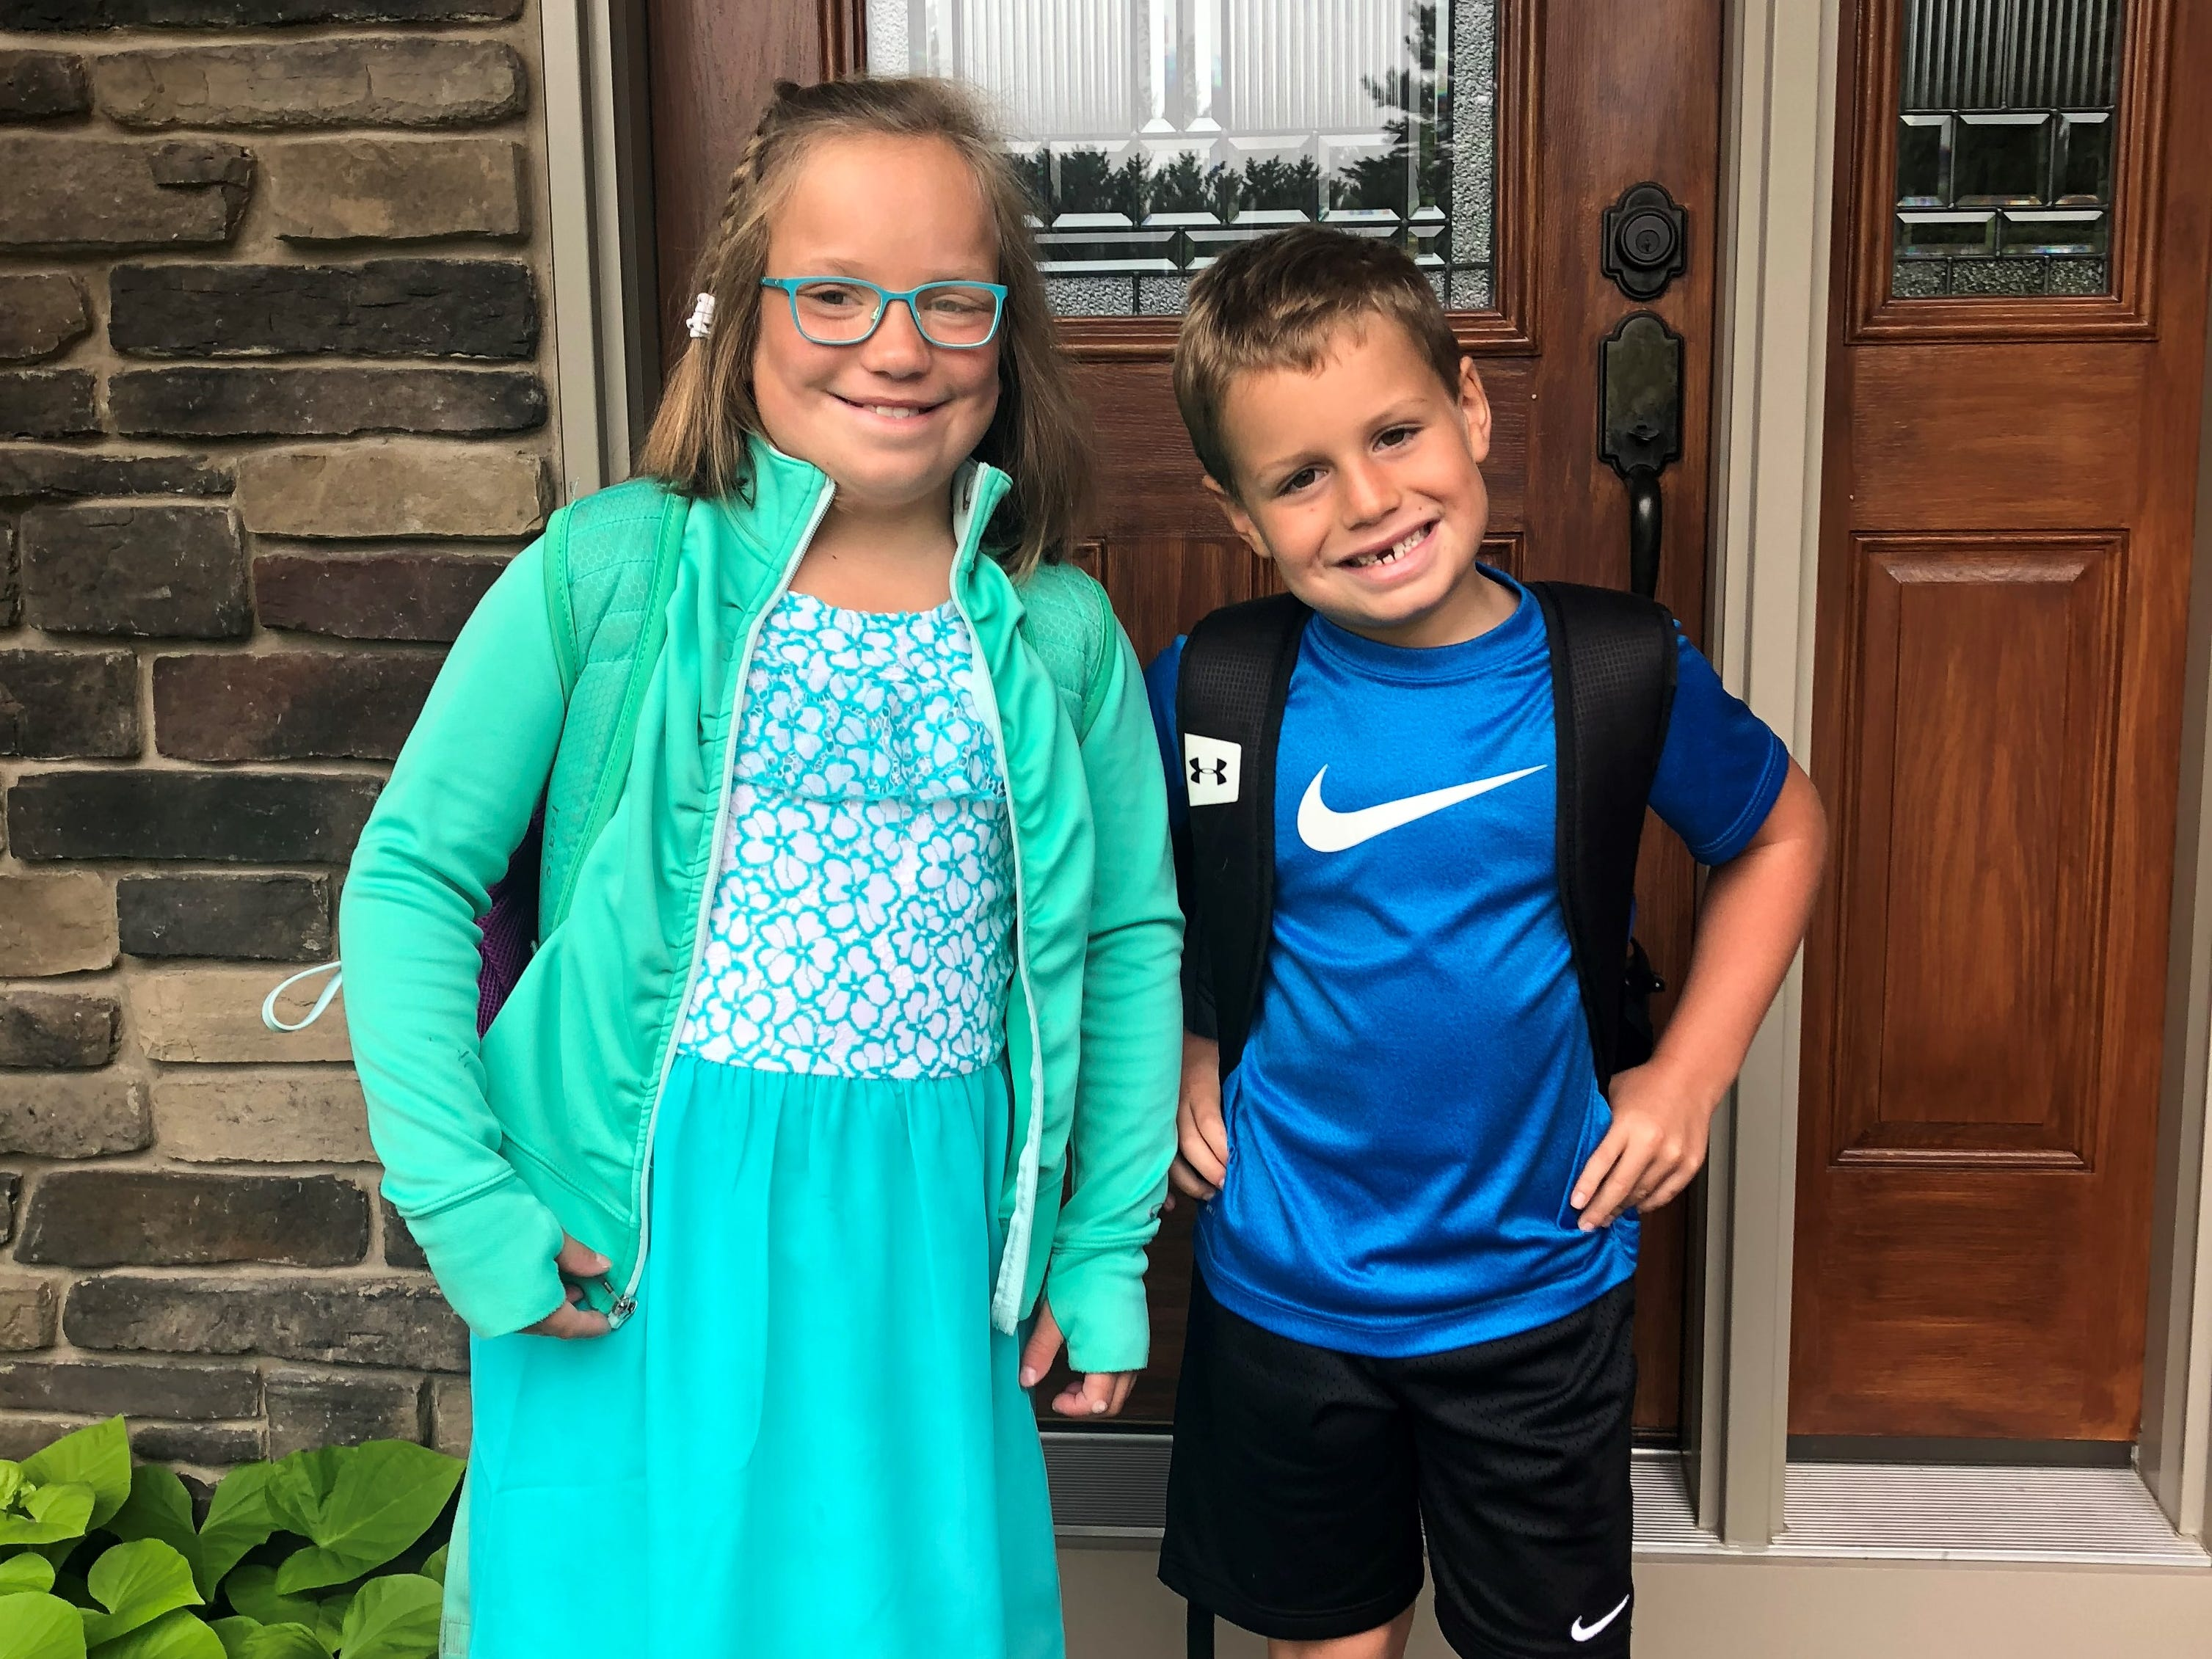 Rease Goodenough on her first day of third grade and Bentley Goodenough on his first day of first grade at Grant Elementary School in Kellner. Their parents are Jim and Amy Goodenough of Wisconsin Rapids.